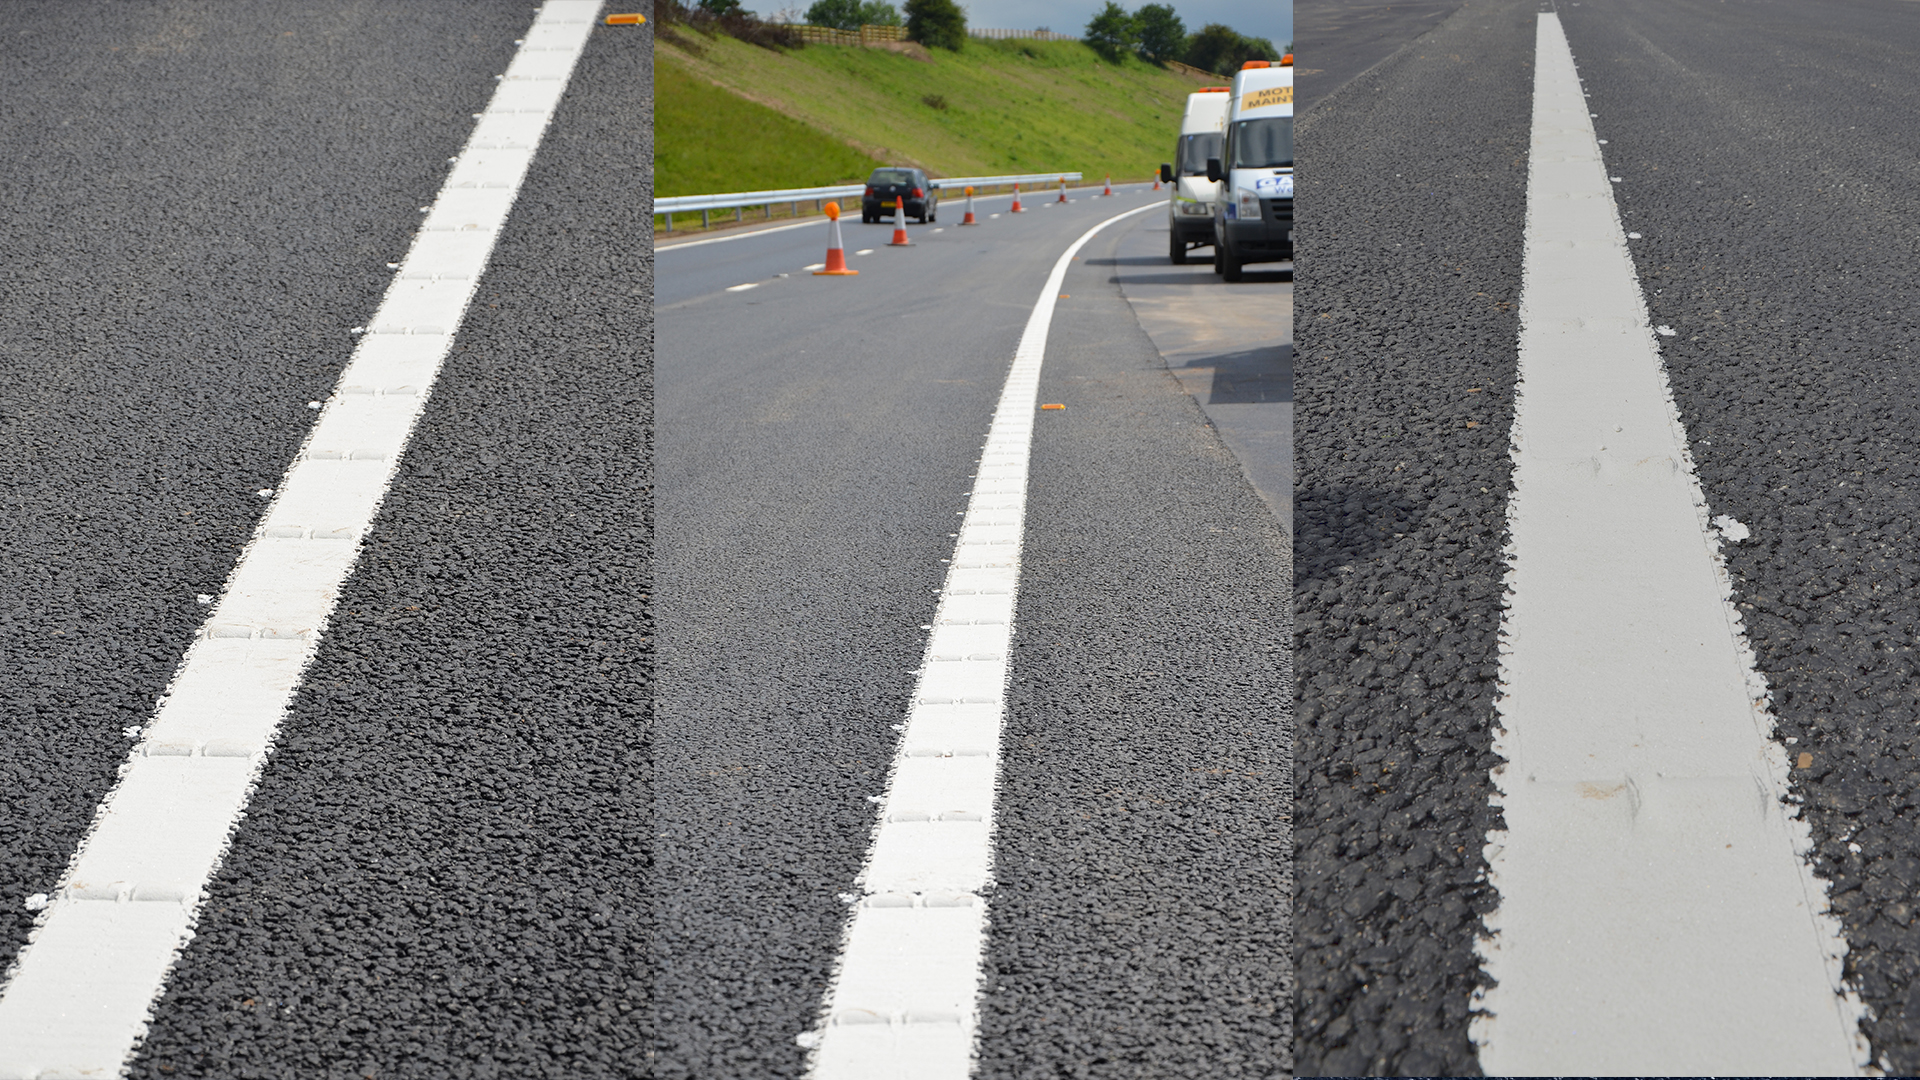 Structured Road Marking